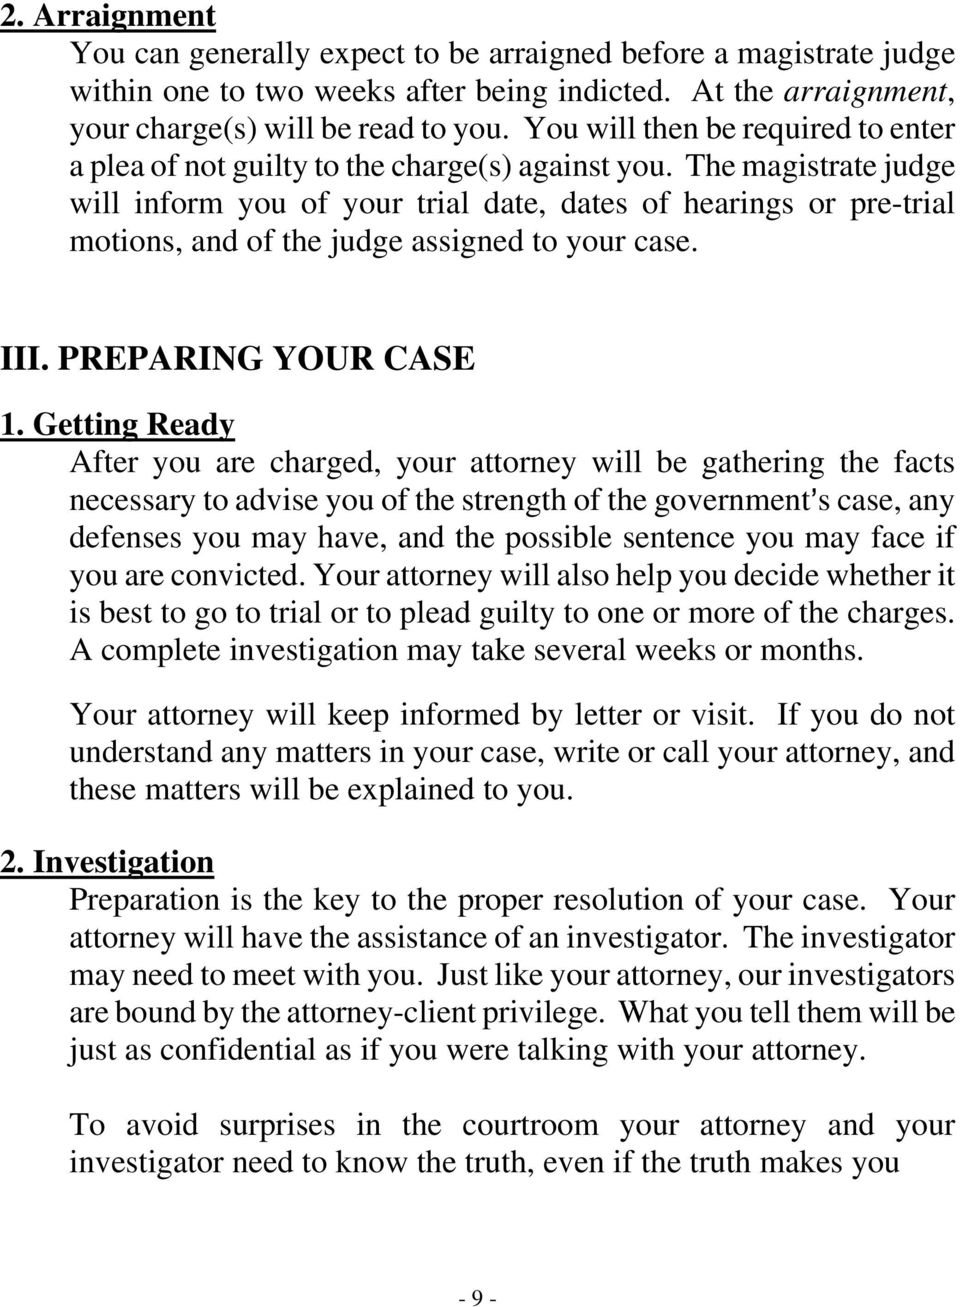 The magistrate judge will inform you of your trial date, dates of hearings or pre-trial motions, and of the judge assigned to your case. III. PREPARING YOUR CASE 1.